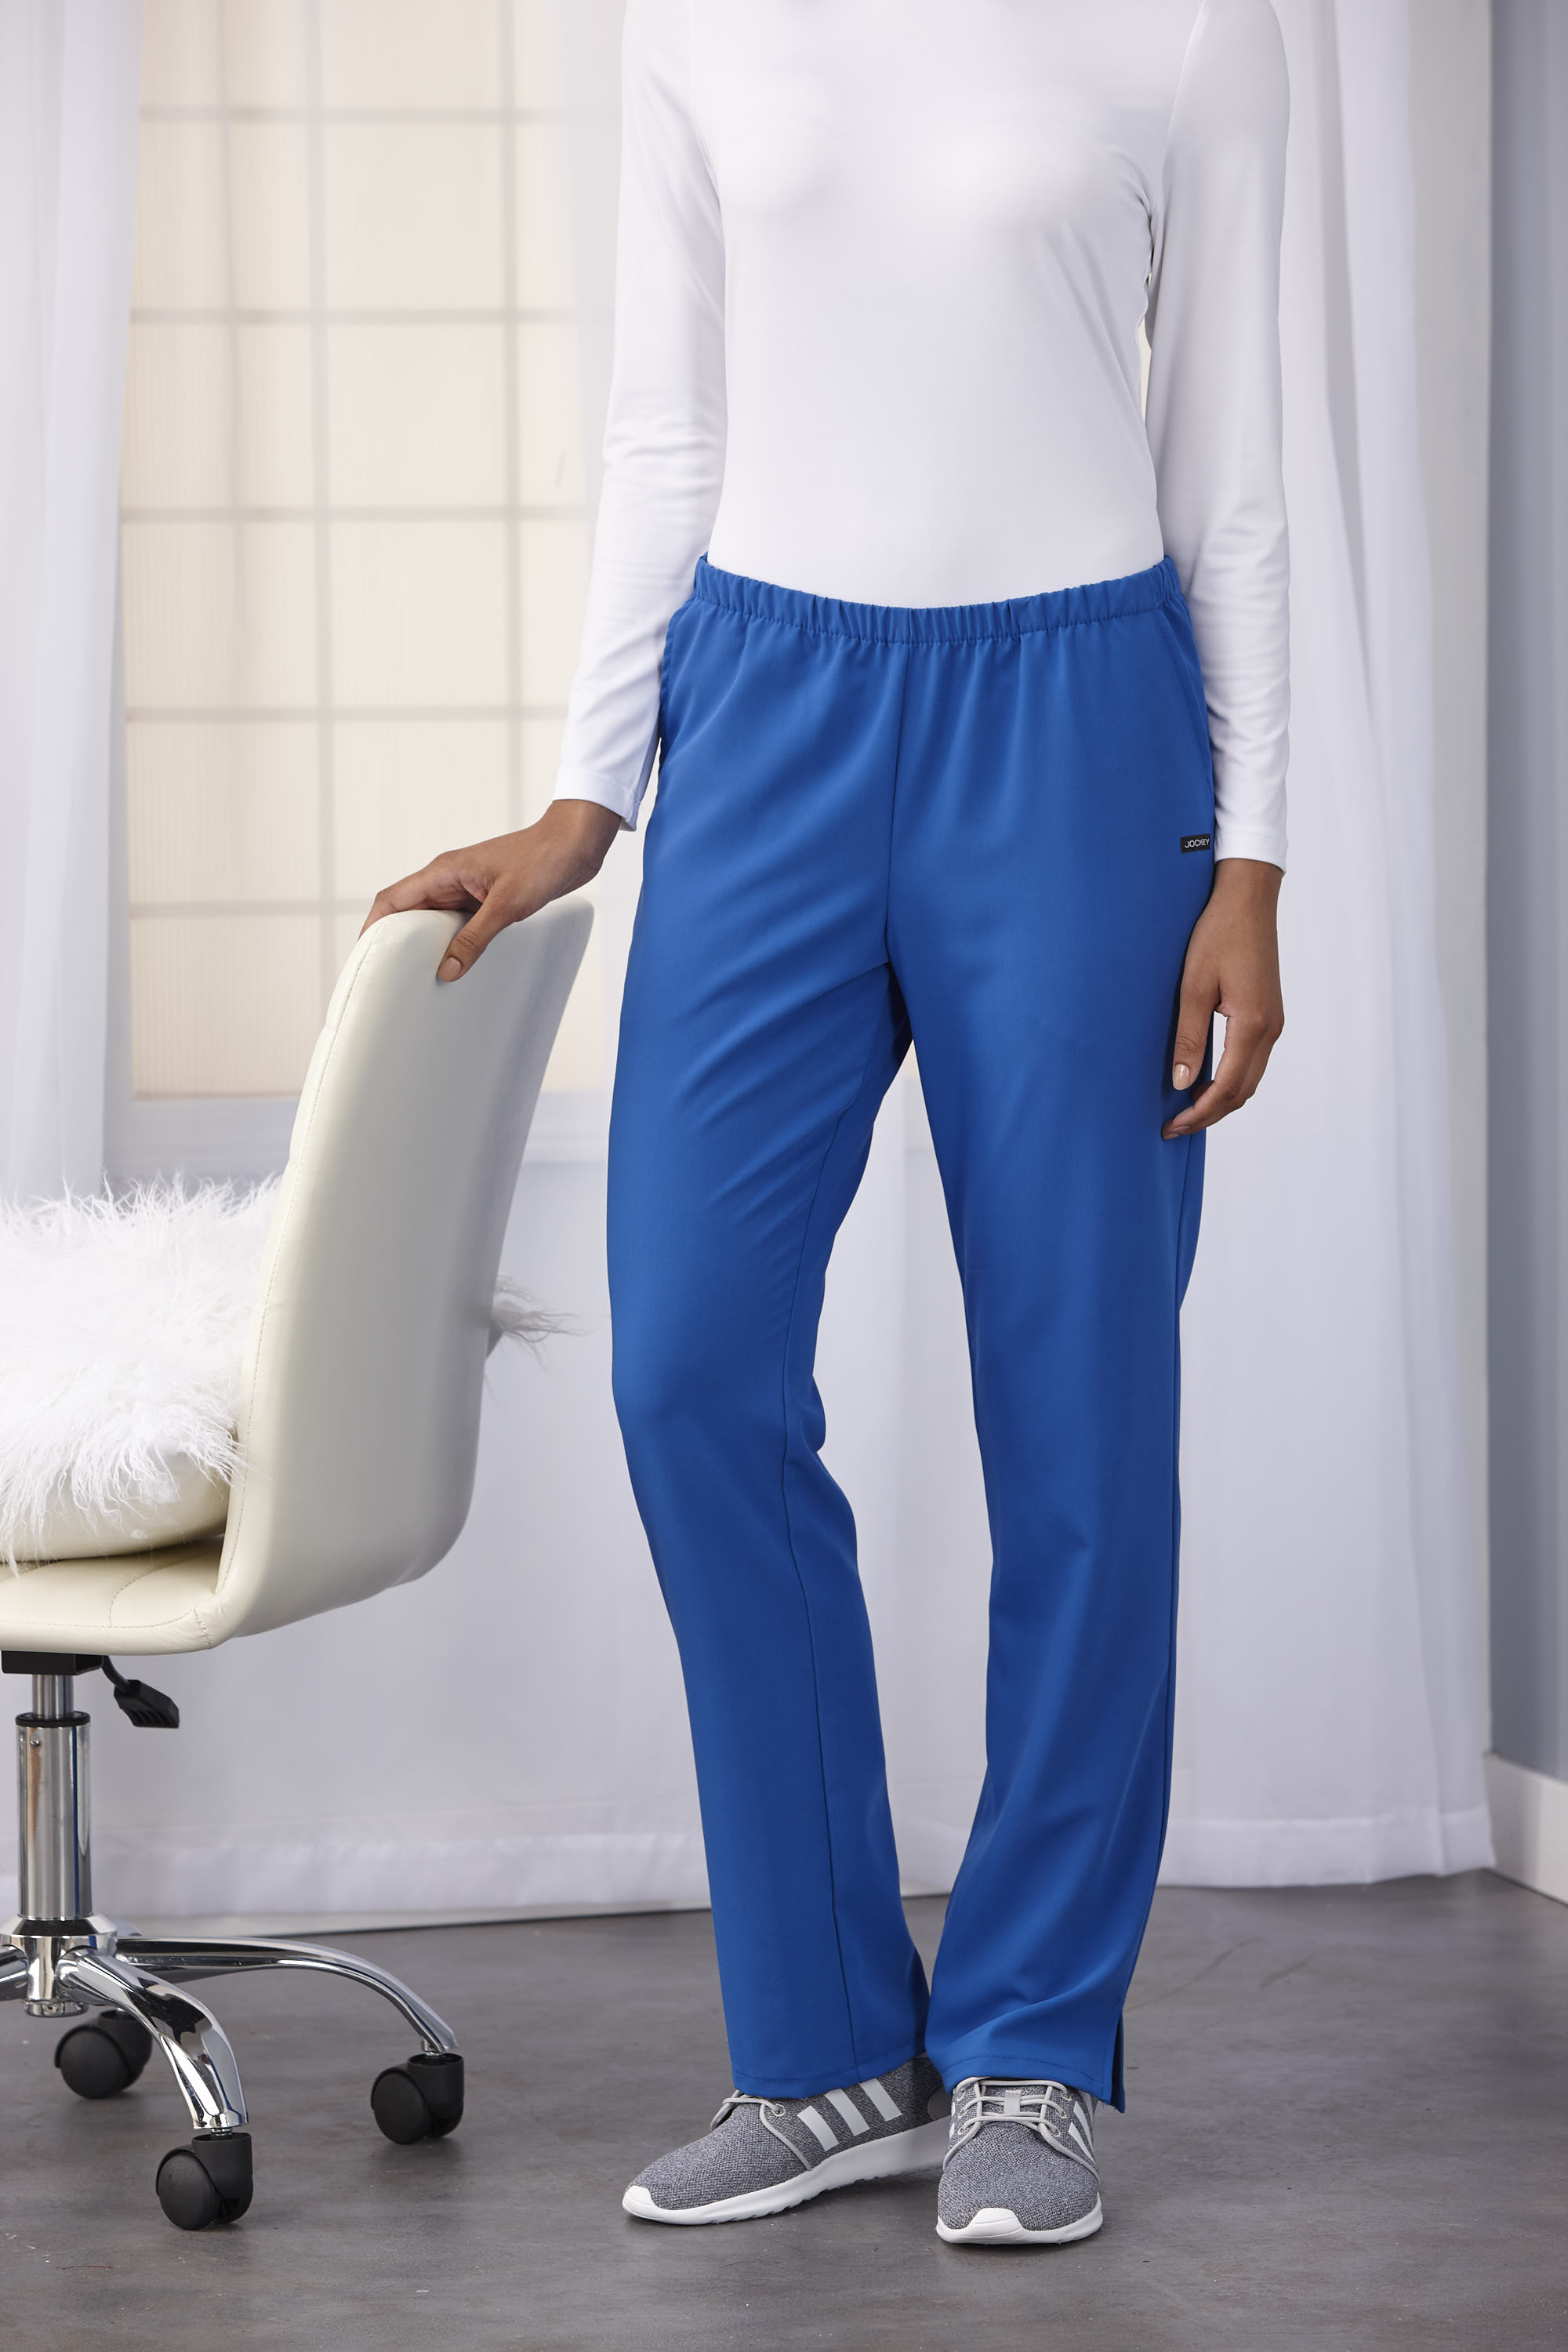 2453-Jockey Transition Ladies Pant with Elastic-Jockey® Scrubs